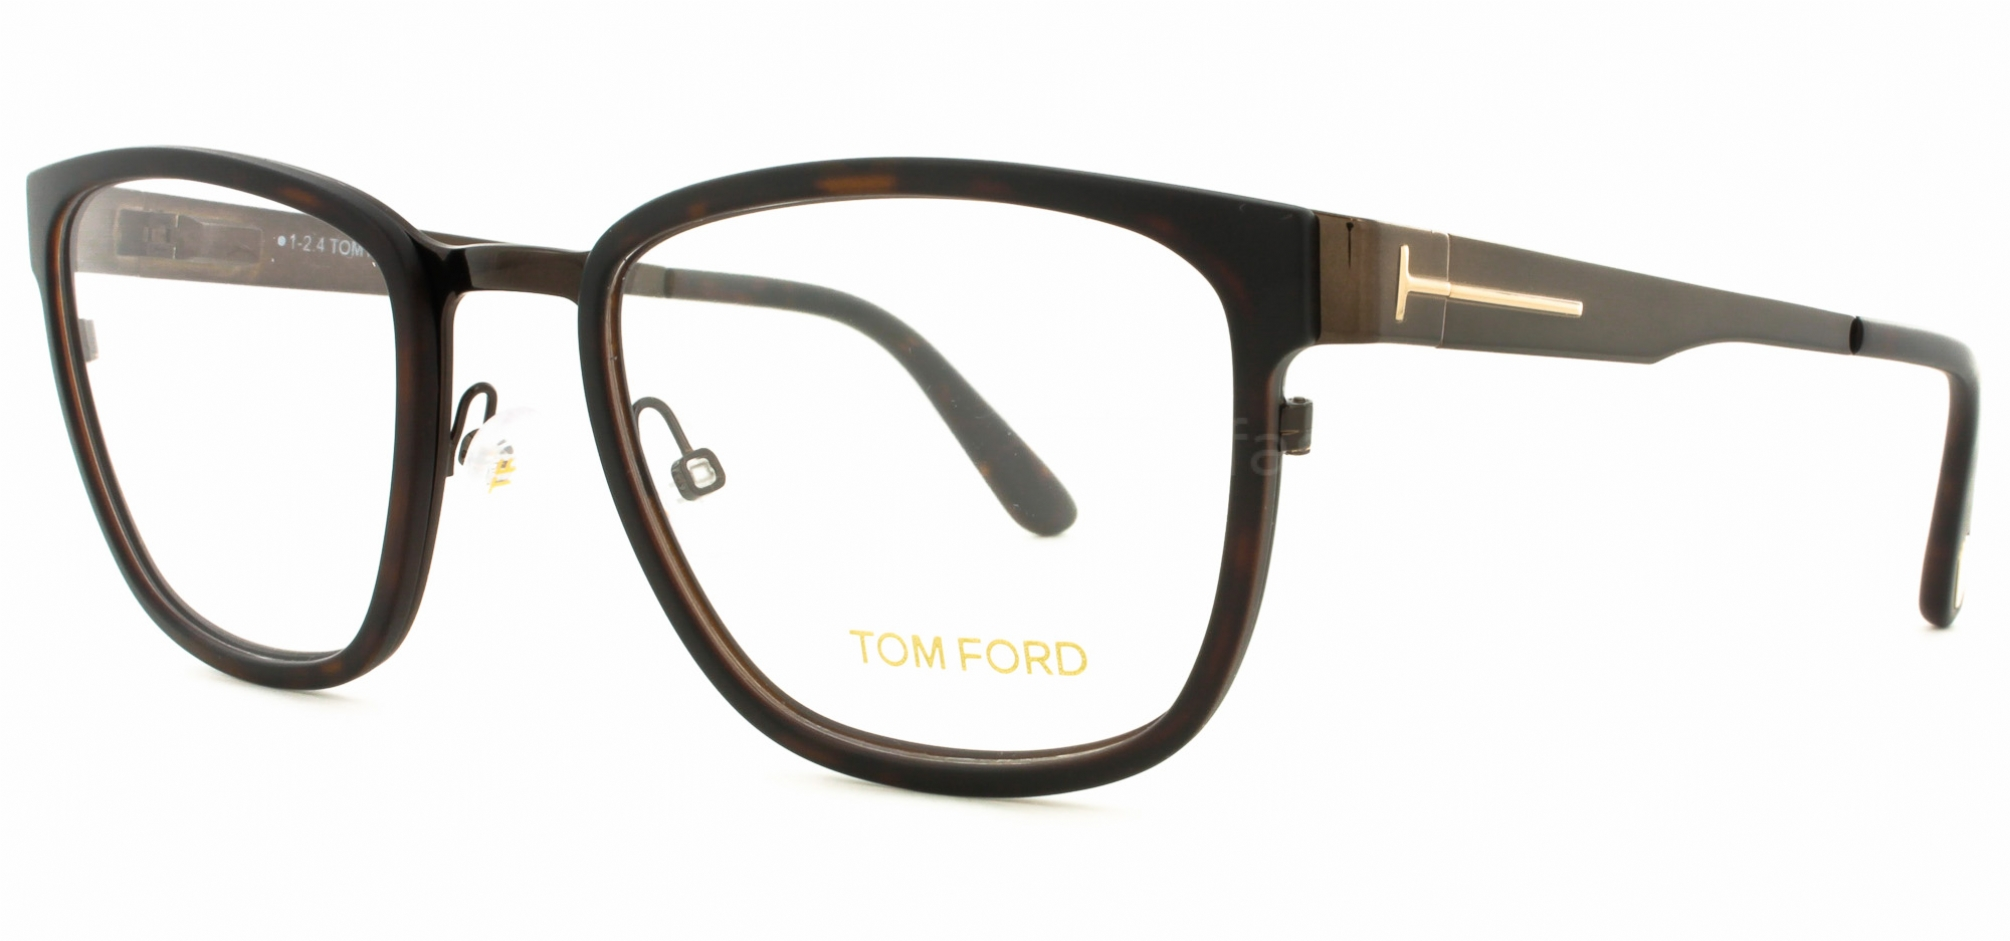 267432d276 Tom Ford 5348 Eyeglasses